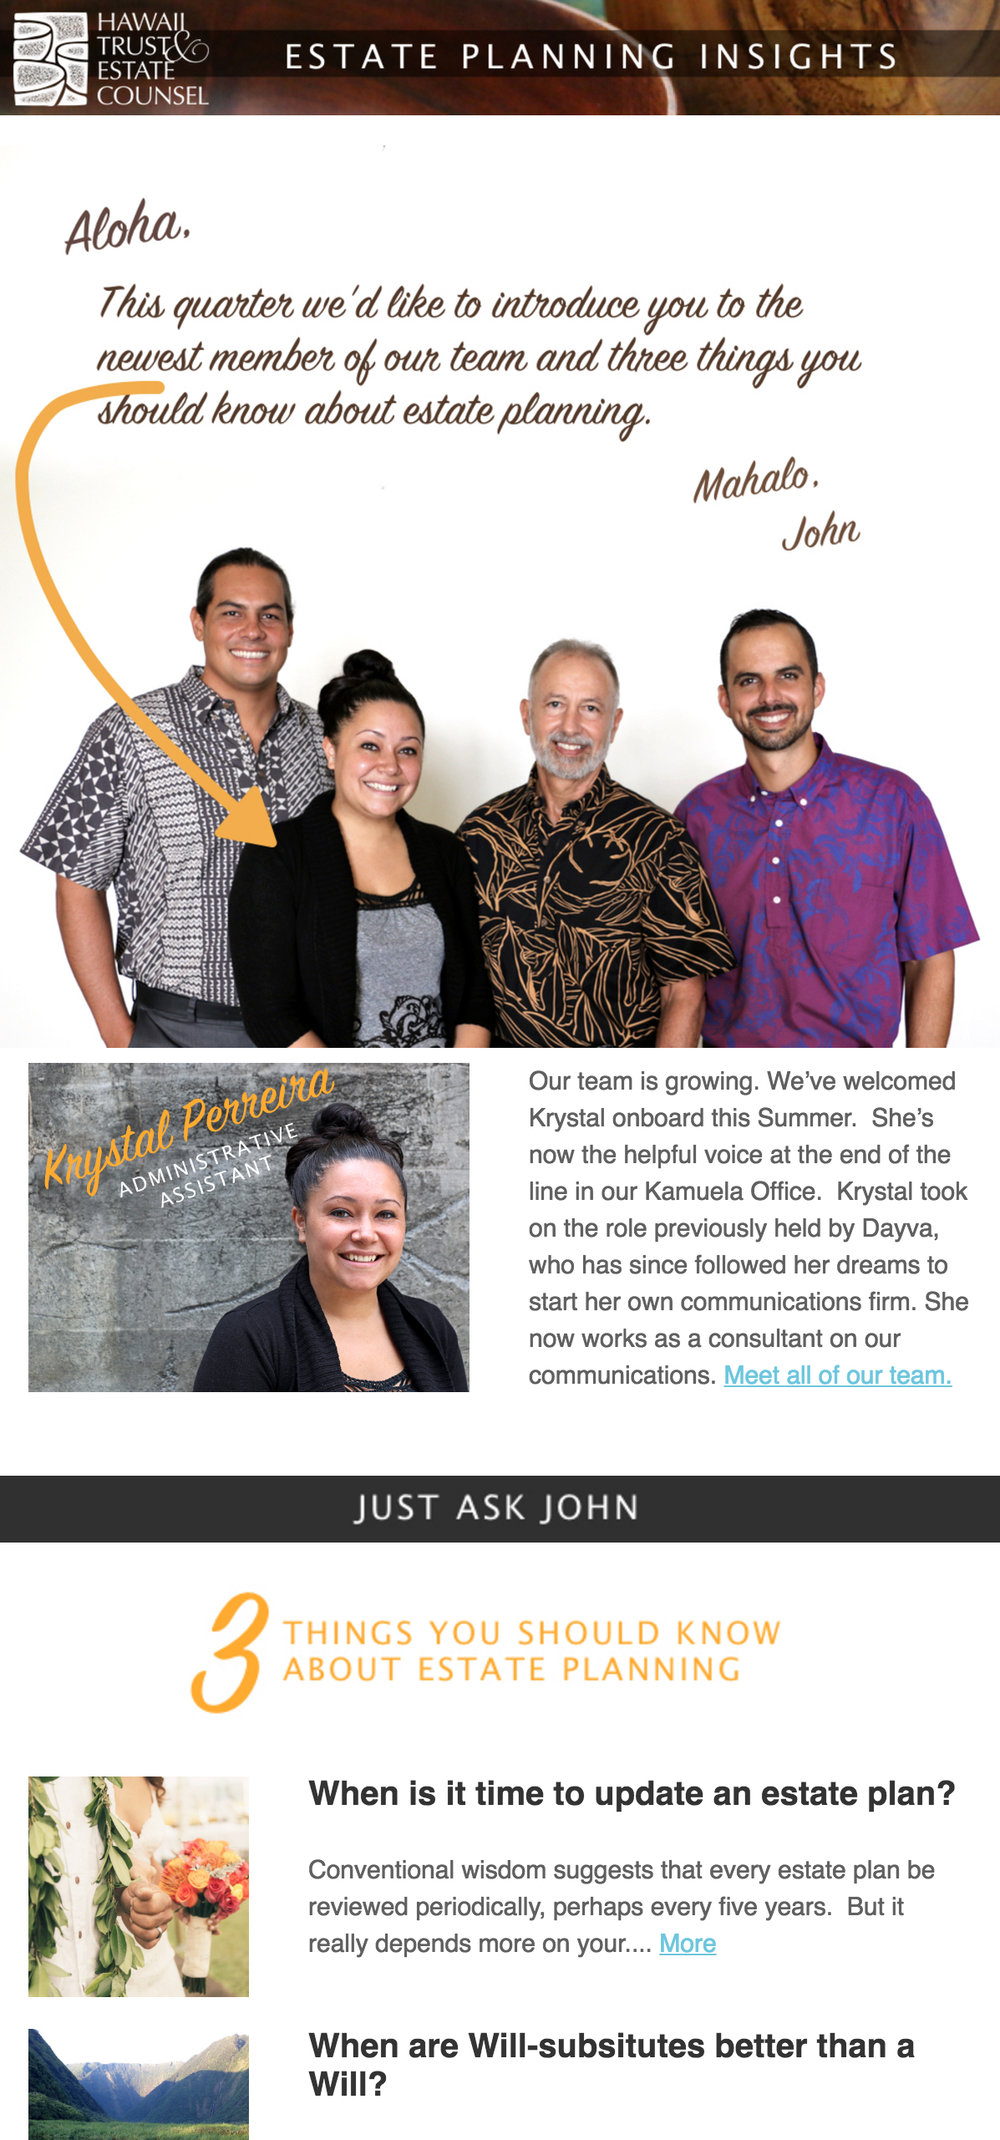 HAWAII TRUST AND ESTATE COUNSEL NEWSLETTER